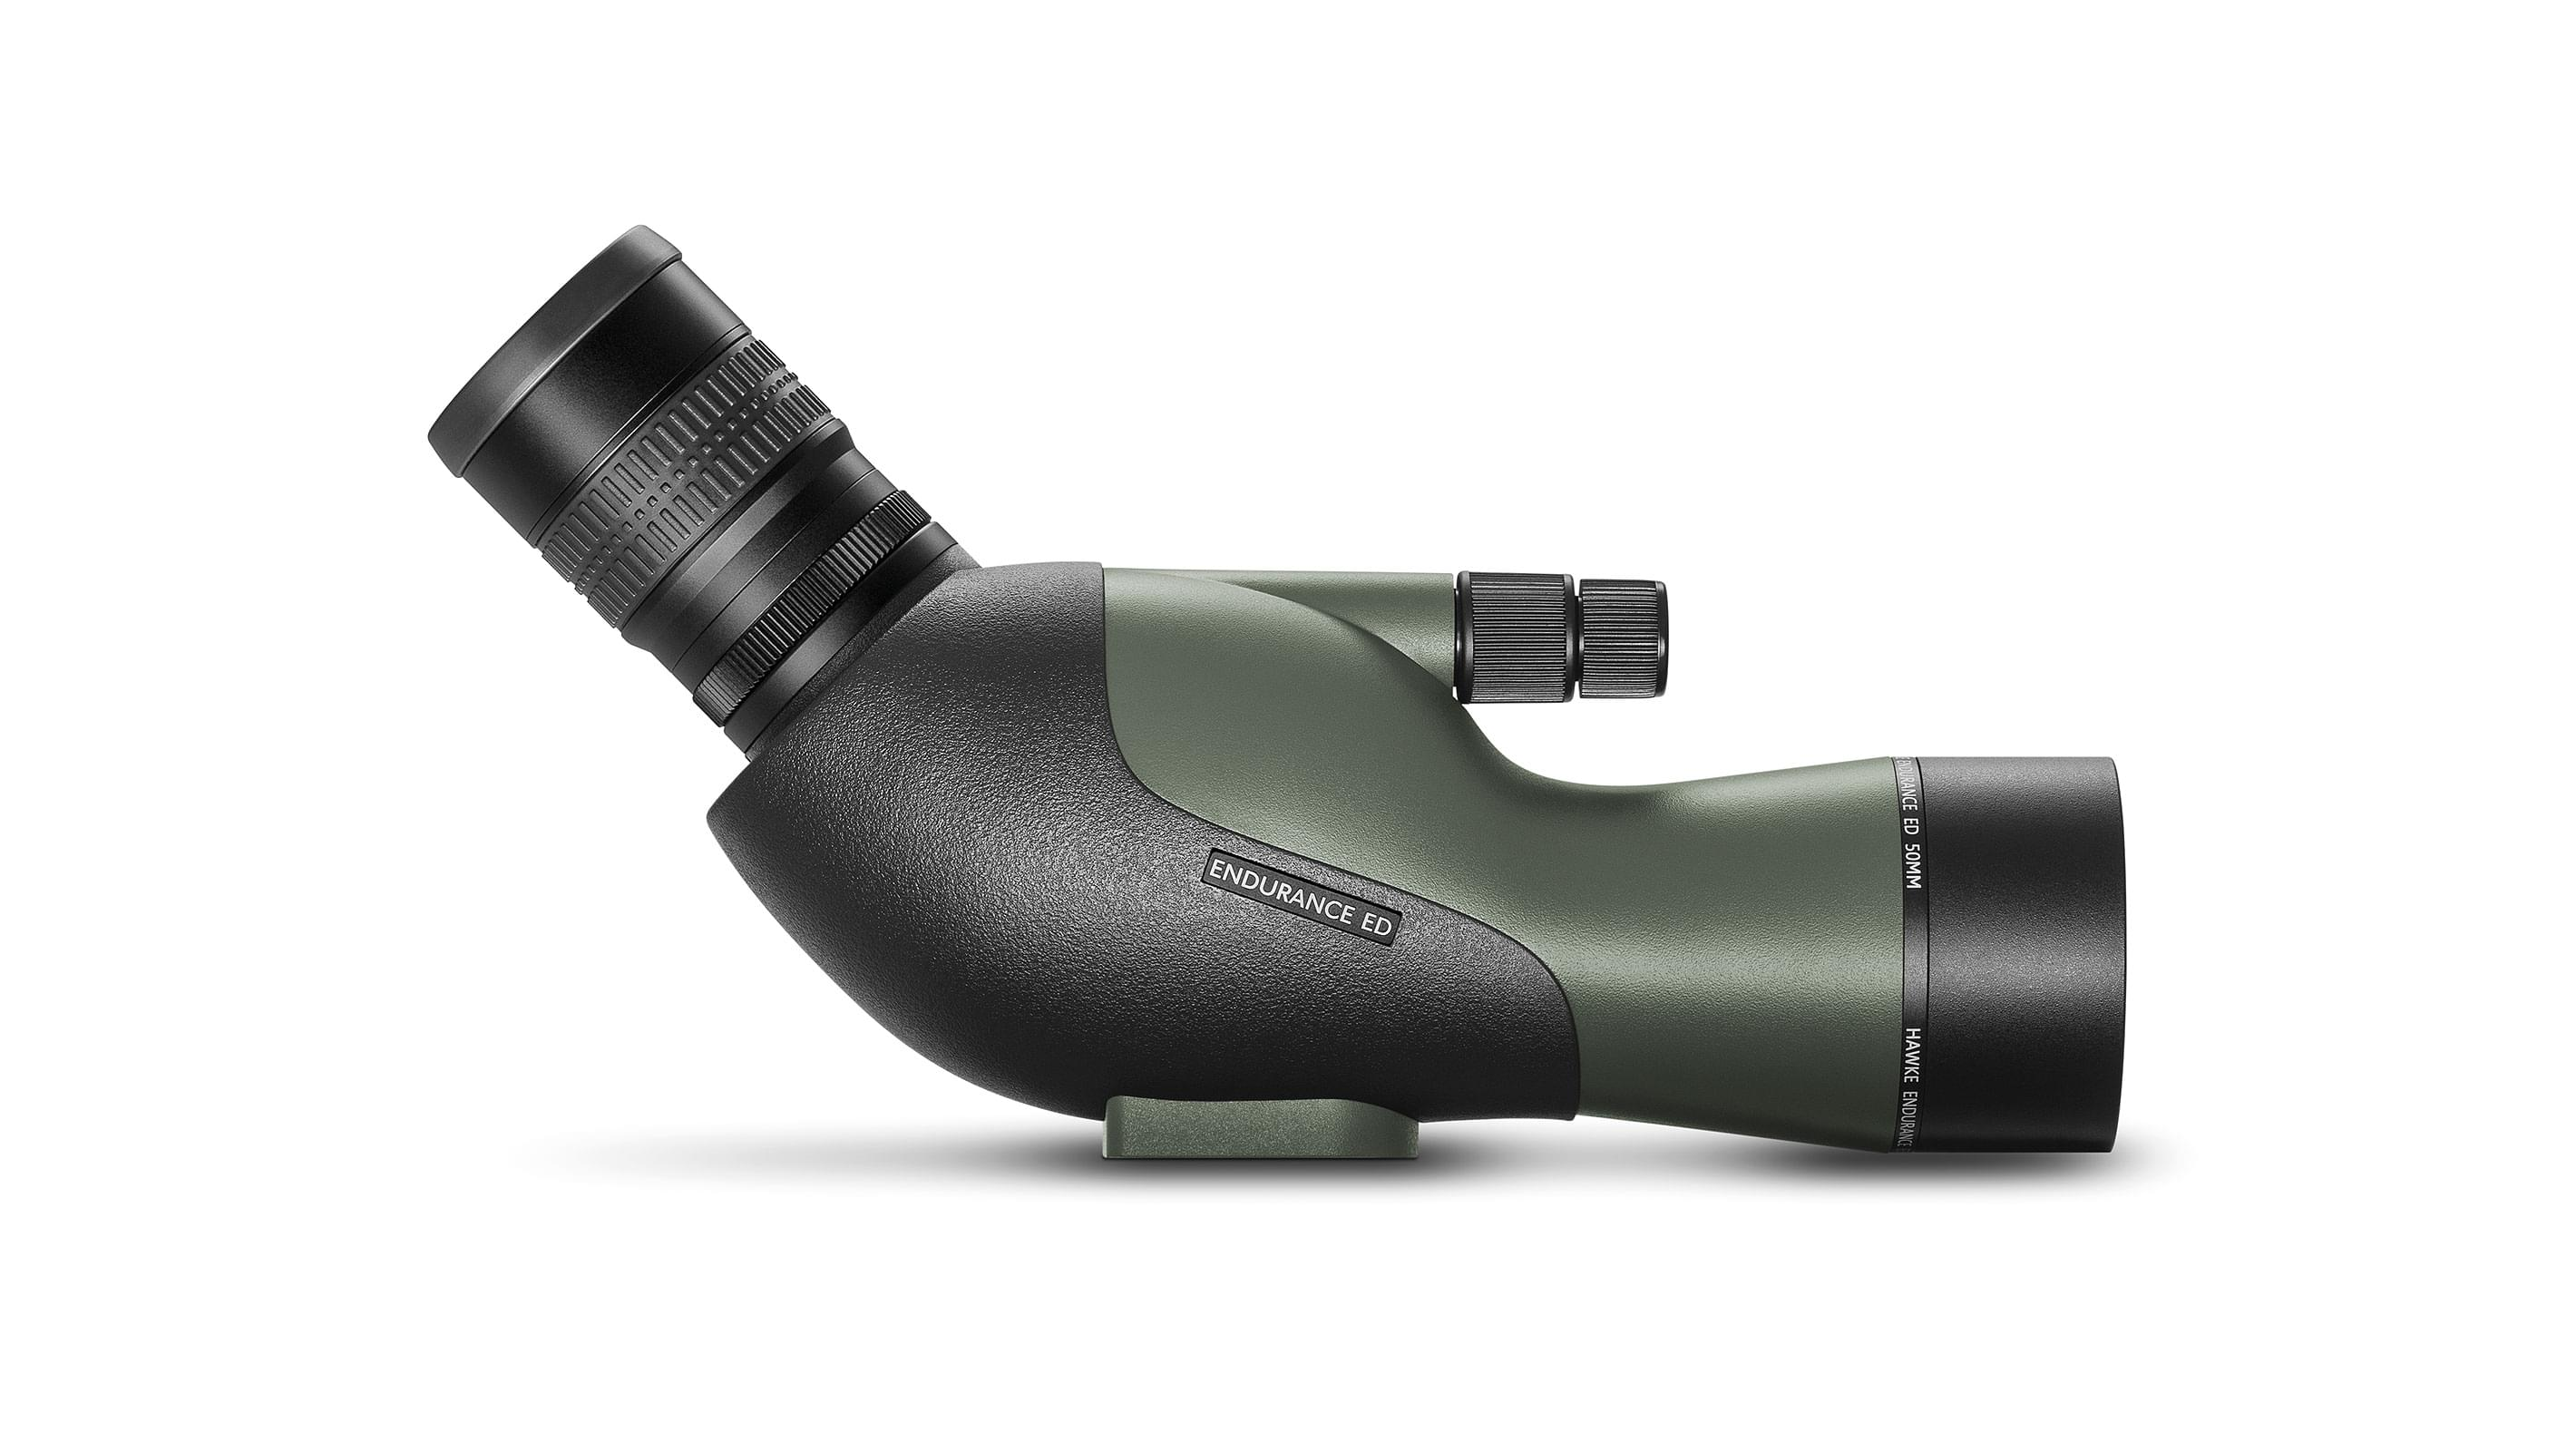 Endurance ED 12-36x50 Spotting Scope